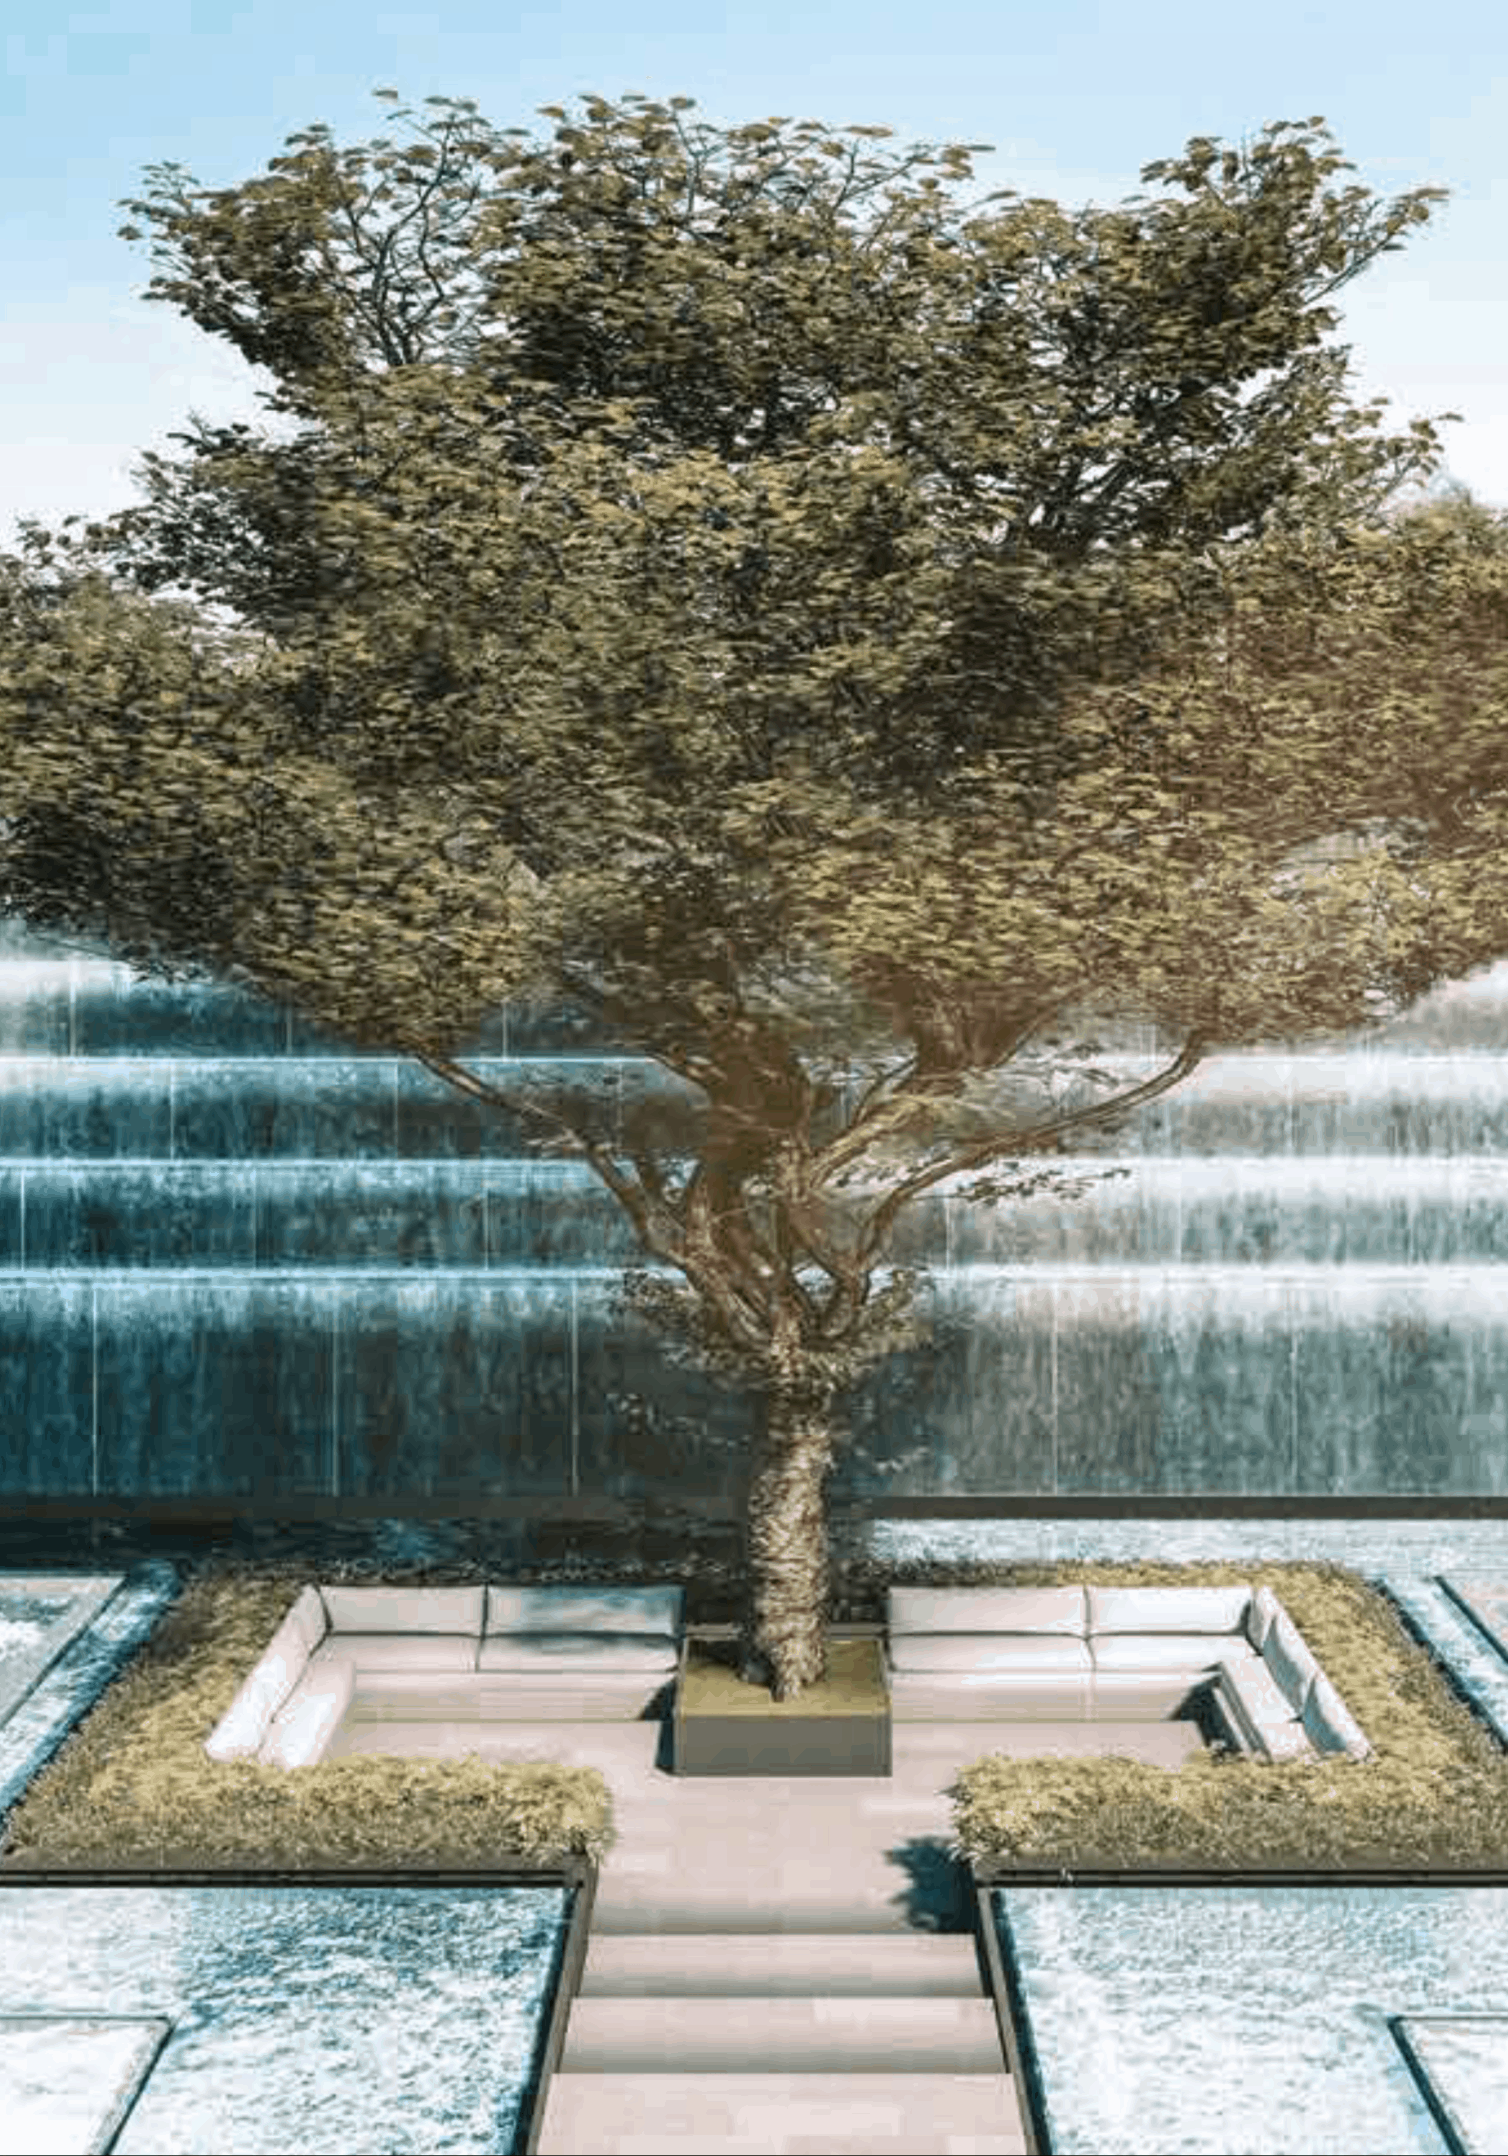 Leedon Green Artist Impression Waterfall Garden Portrait